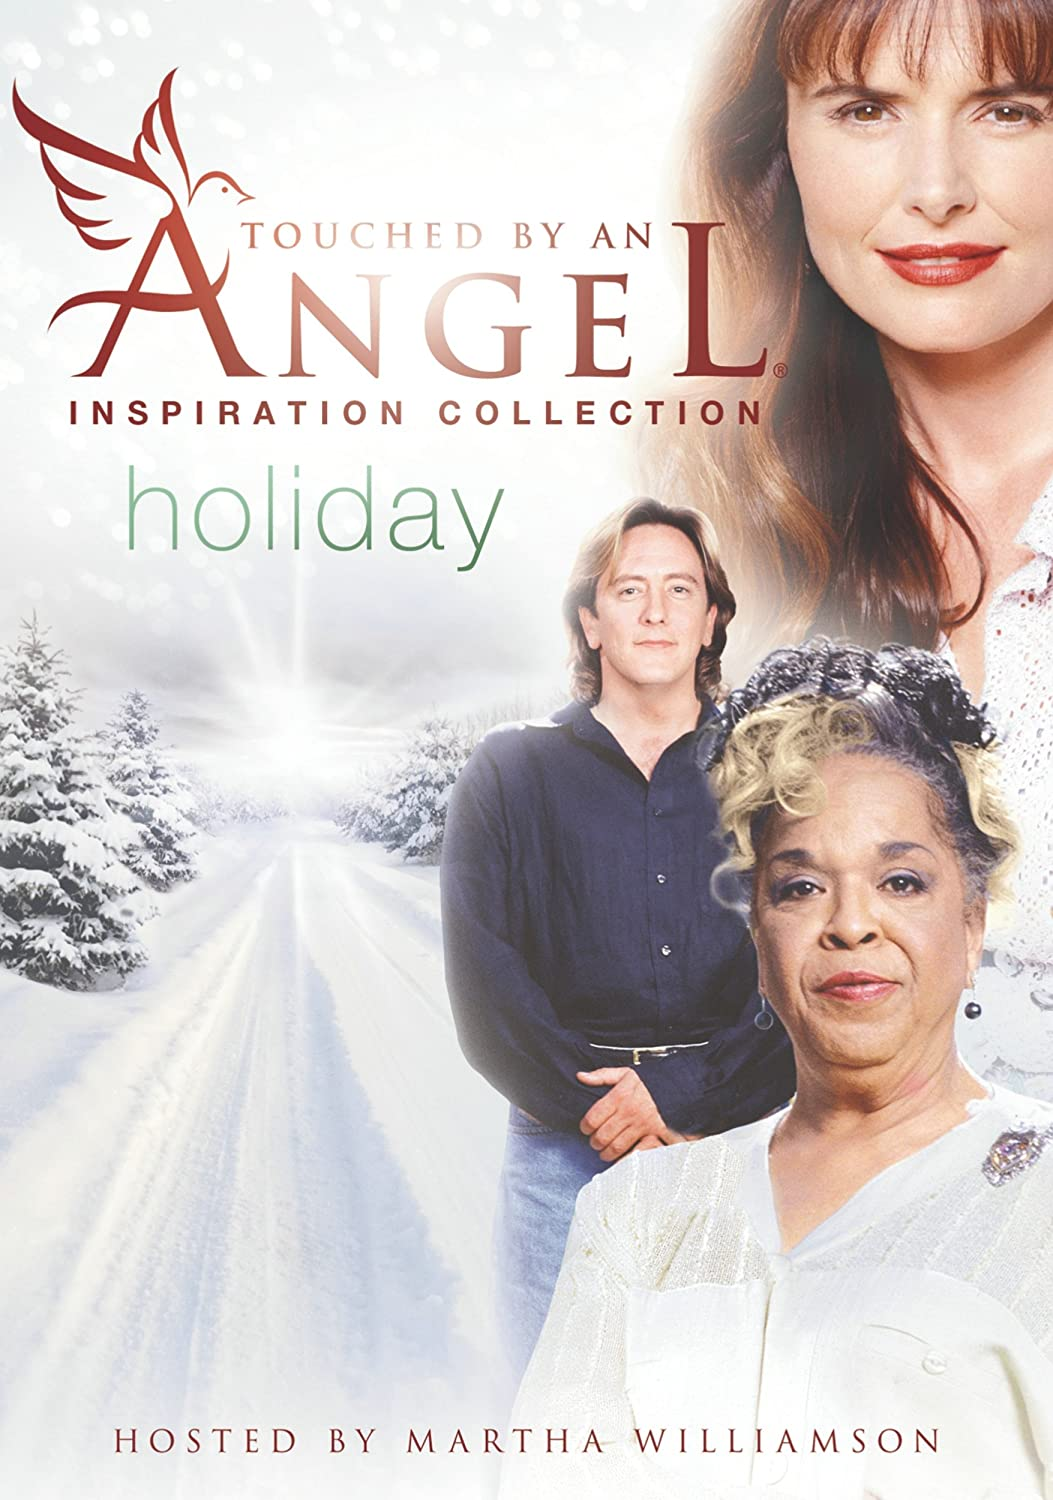 Amazon.com: Touched By An Angel: Inspiration Collection - Holiday ...